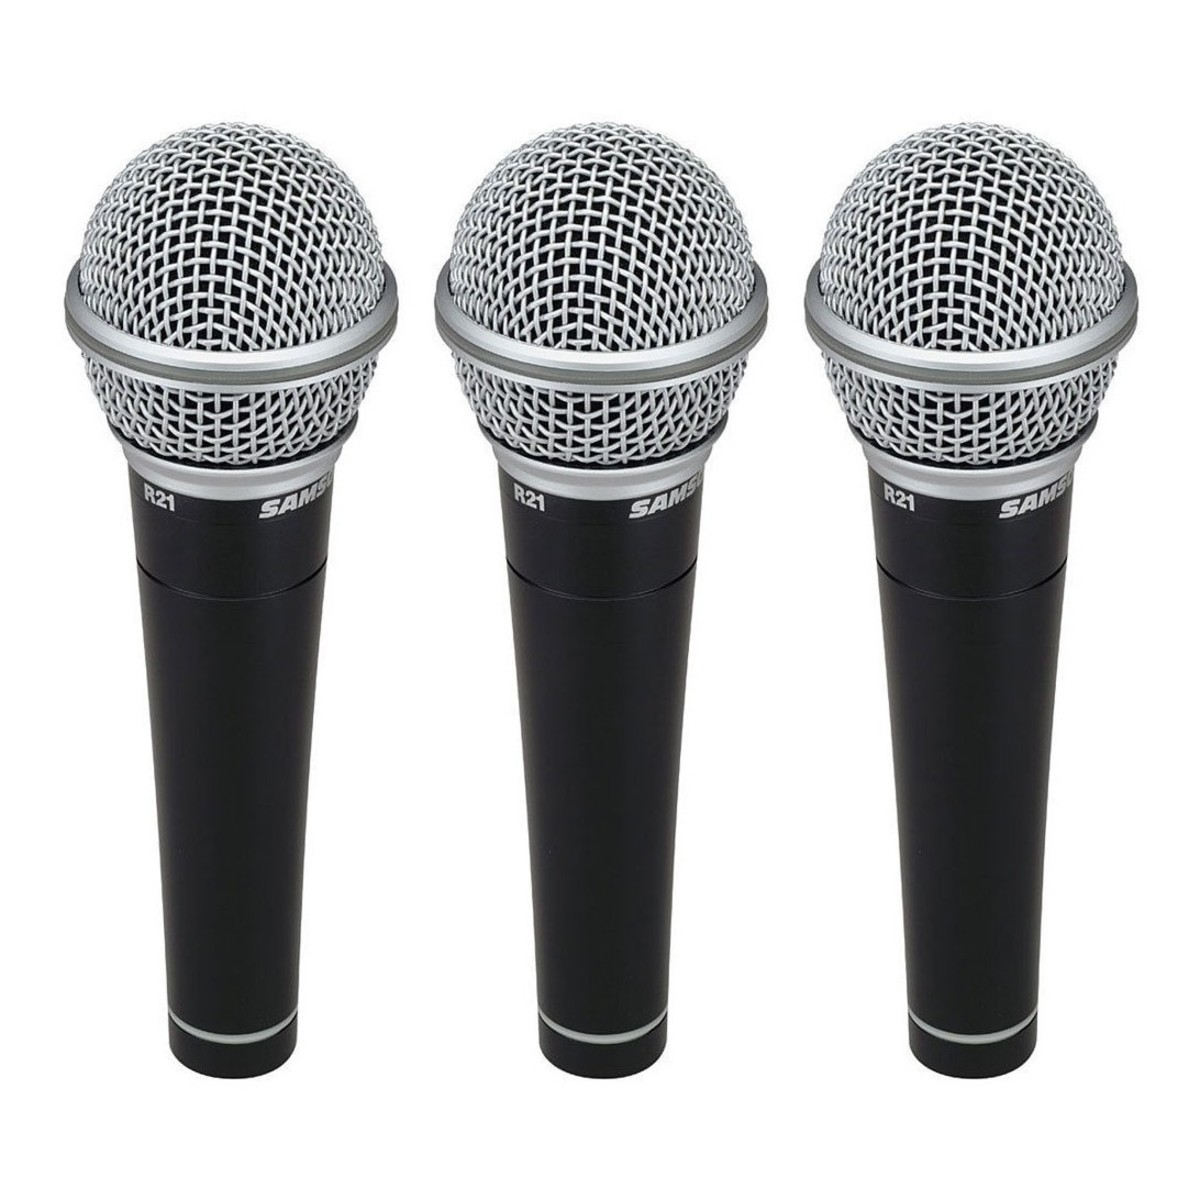 Click to view product details and reviews for Samson R21 Cardioid Dynamic Vocal Microphone 3 Pack.